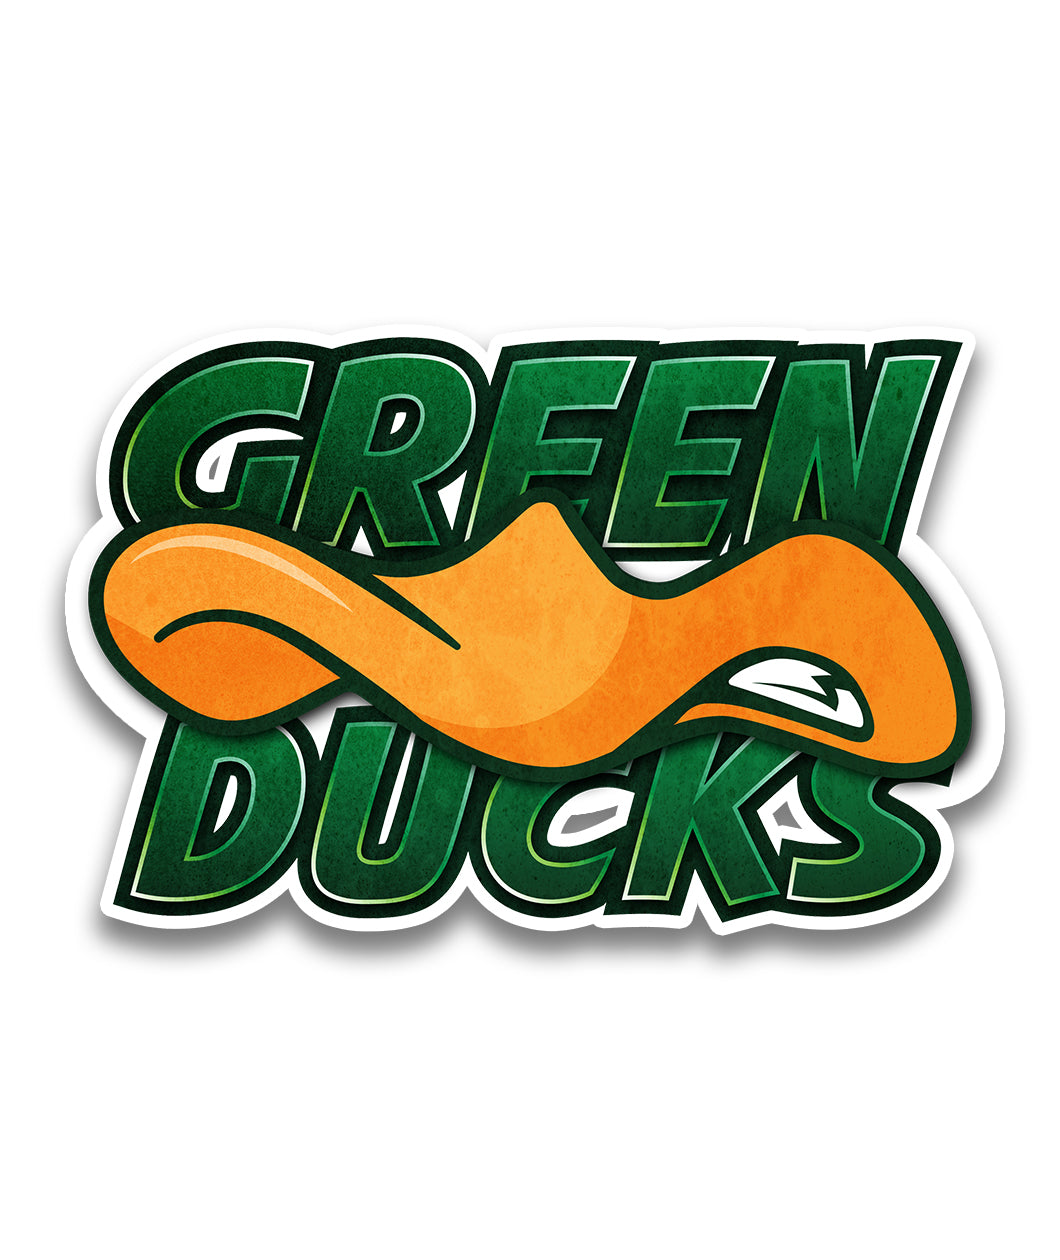 Green Ducks Team Decal